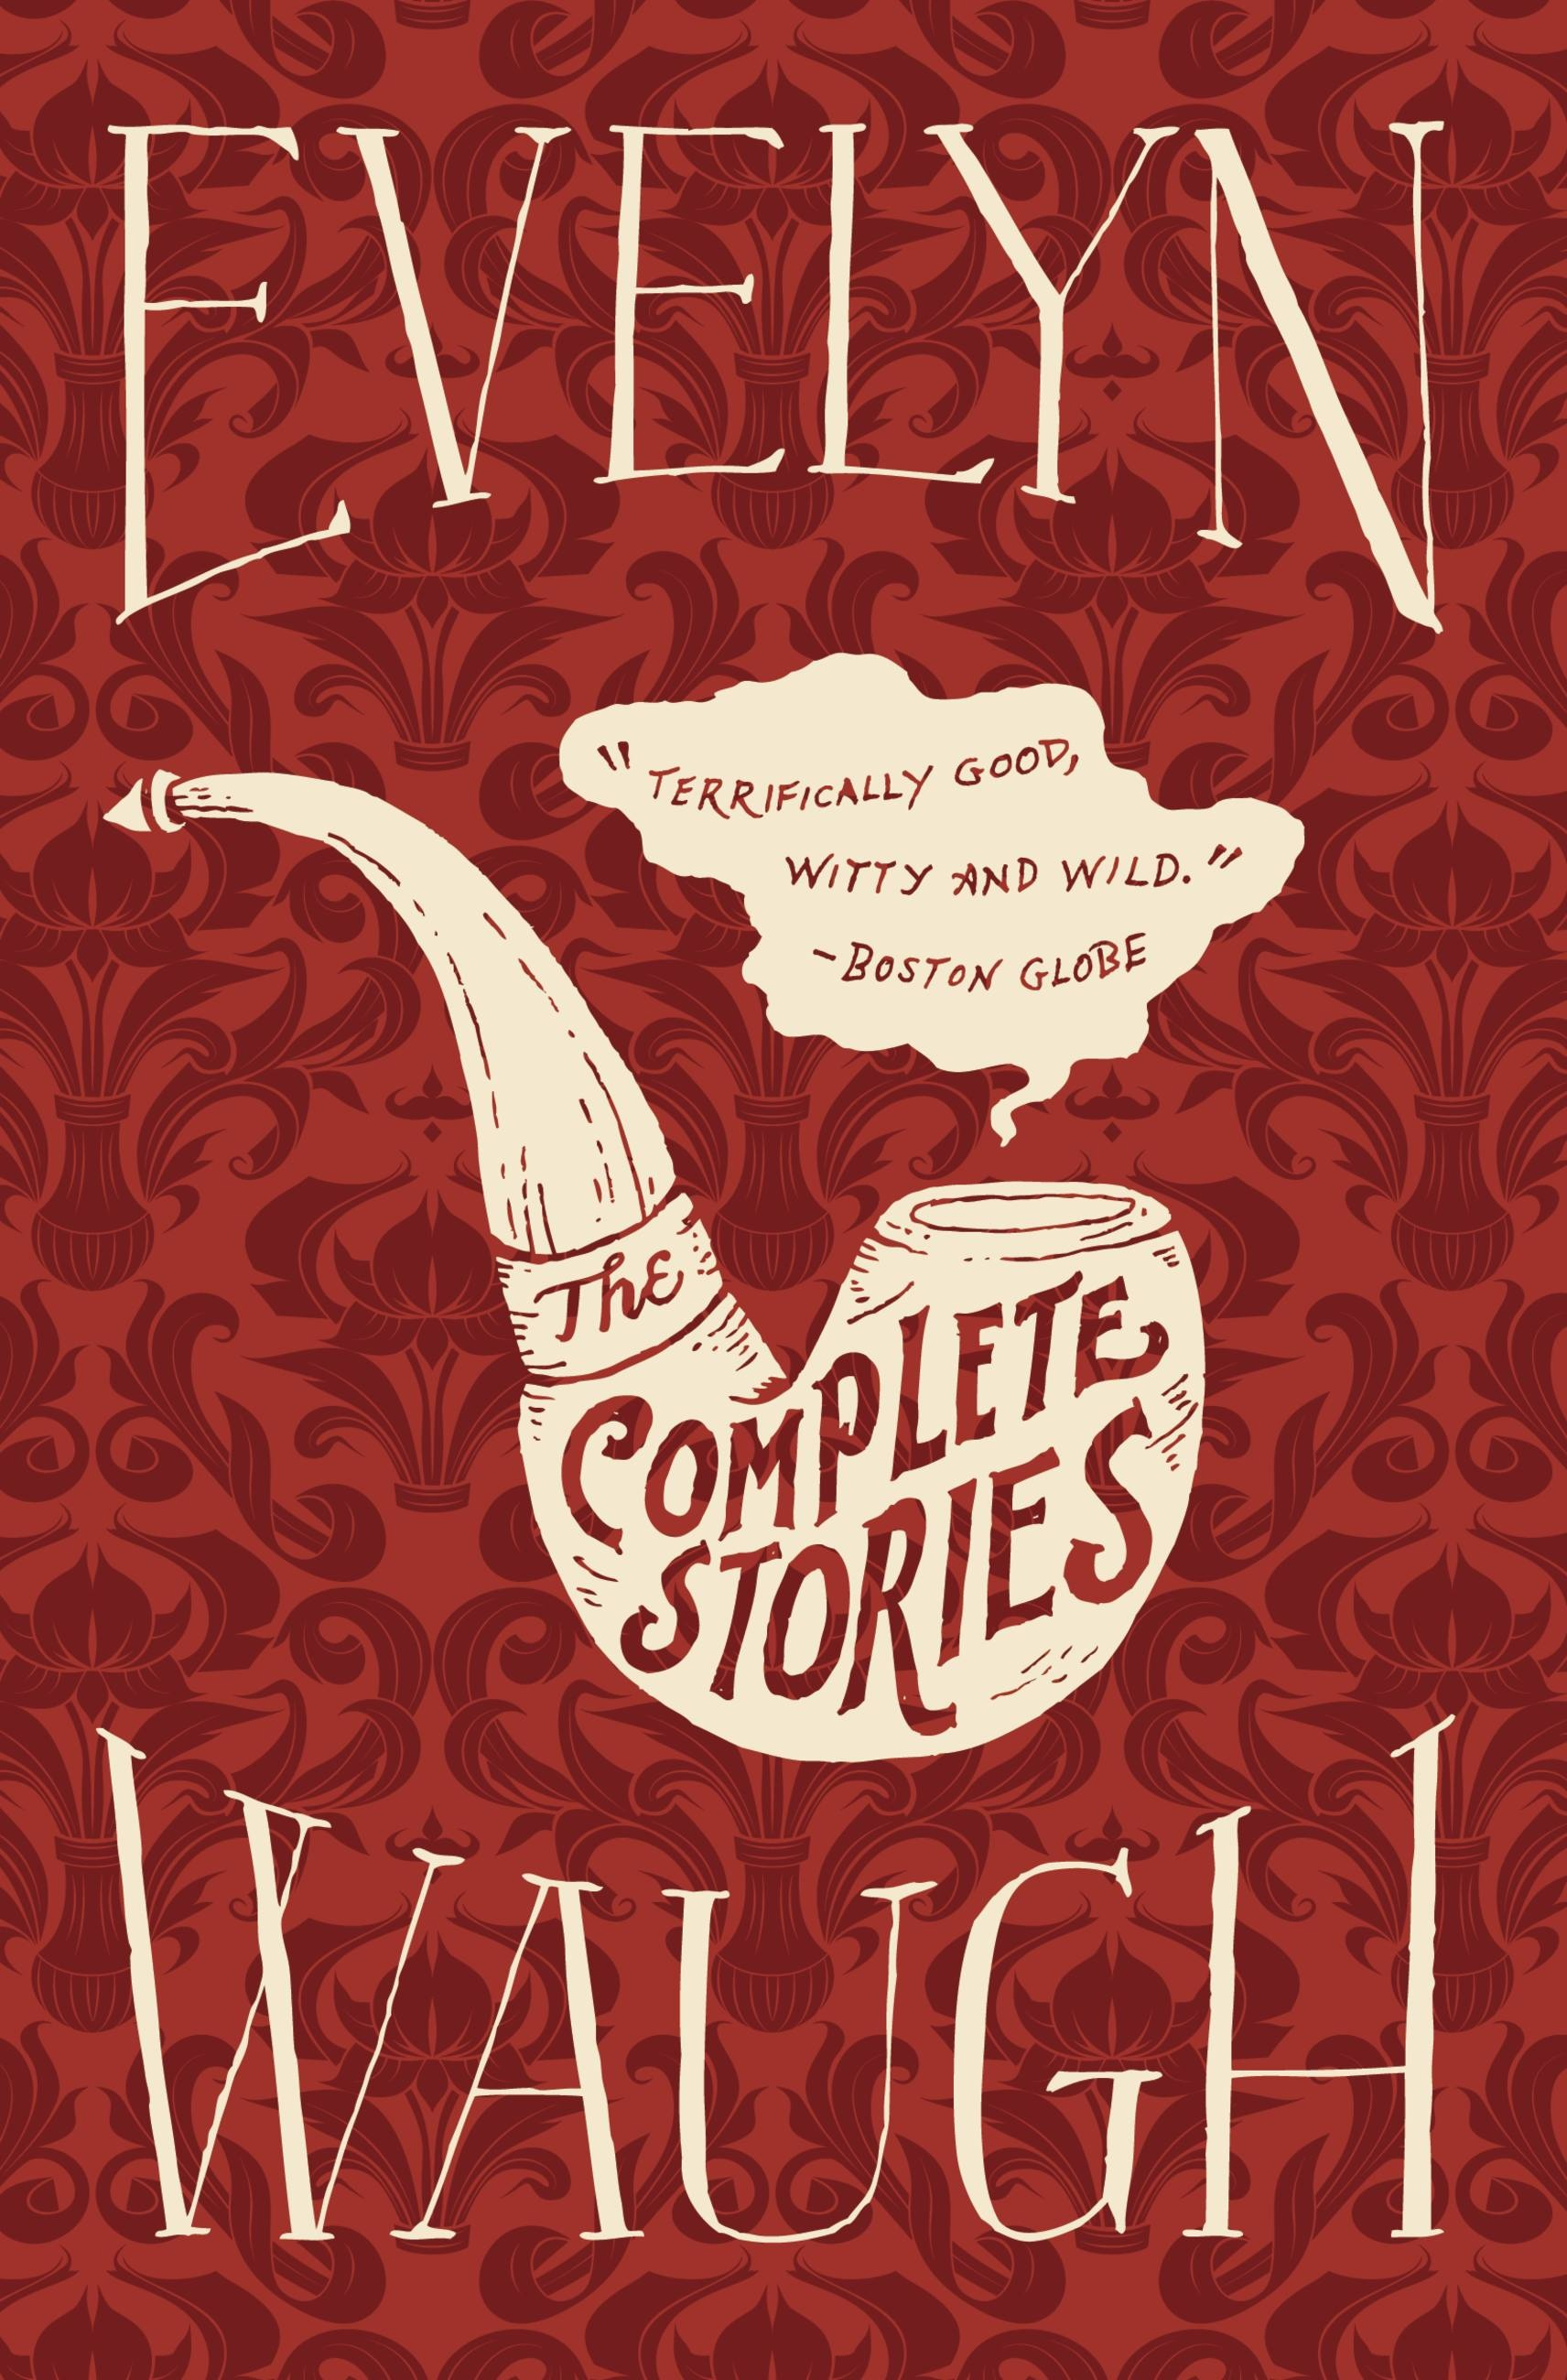 Complete Stories of Evelyn Waugh, The